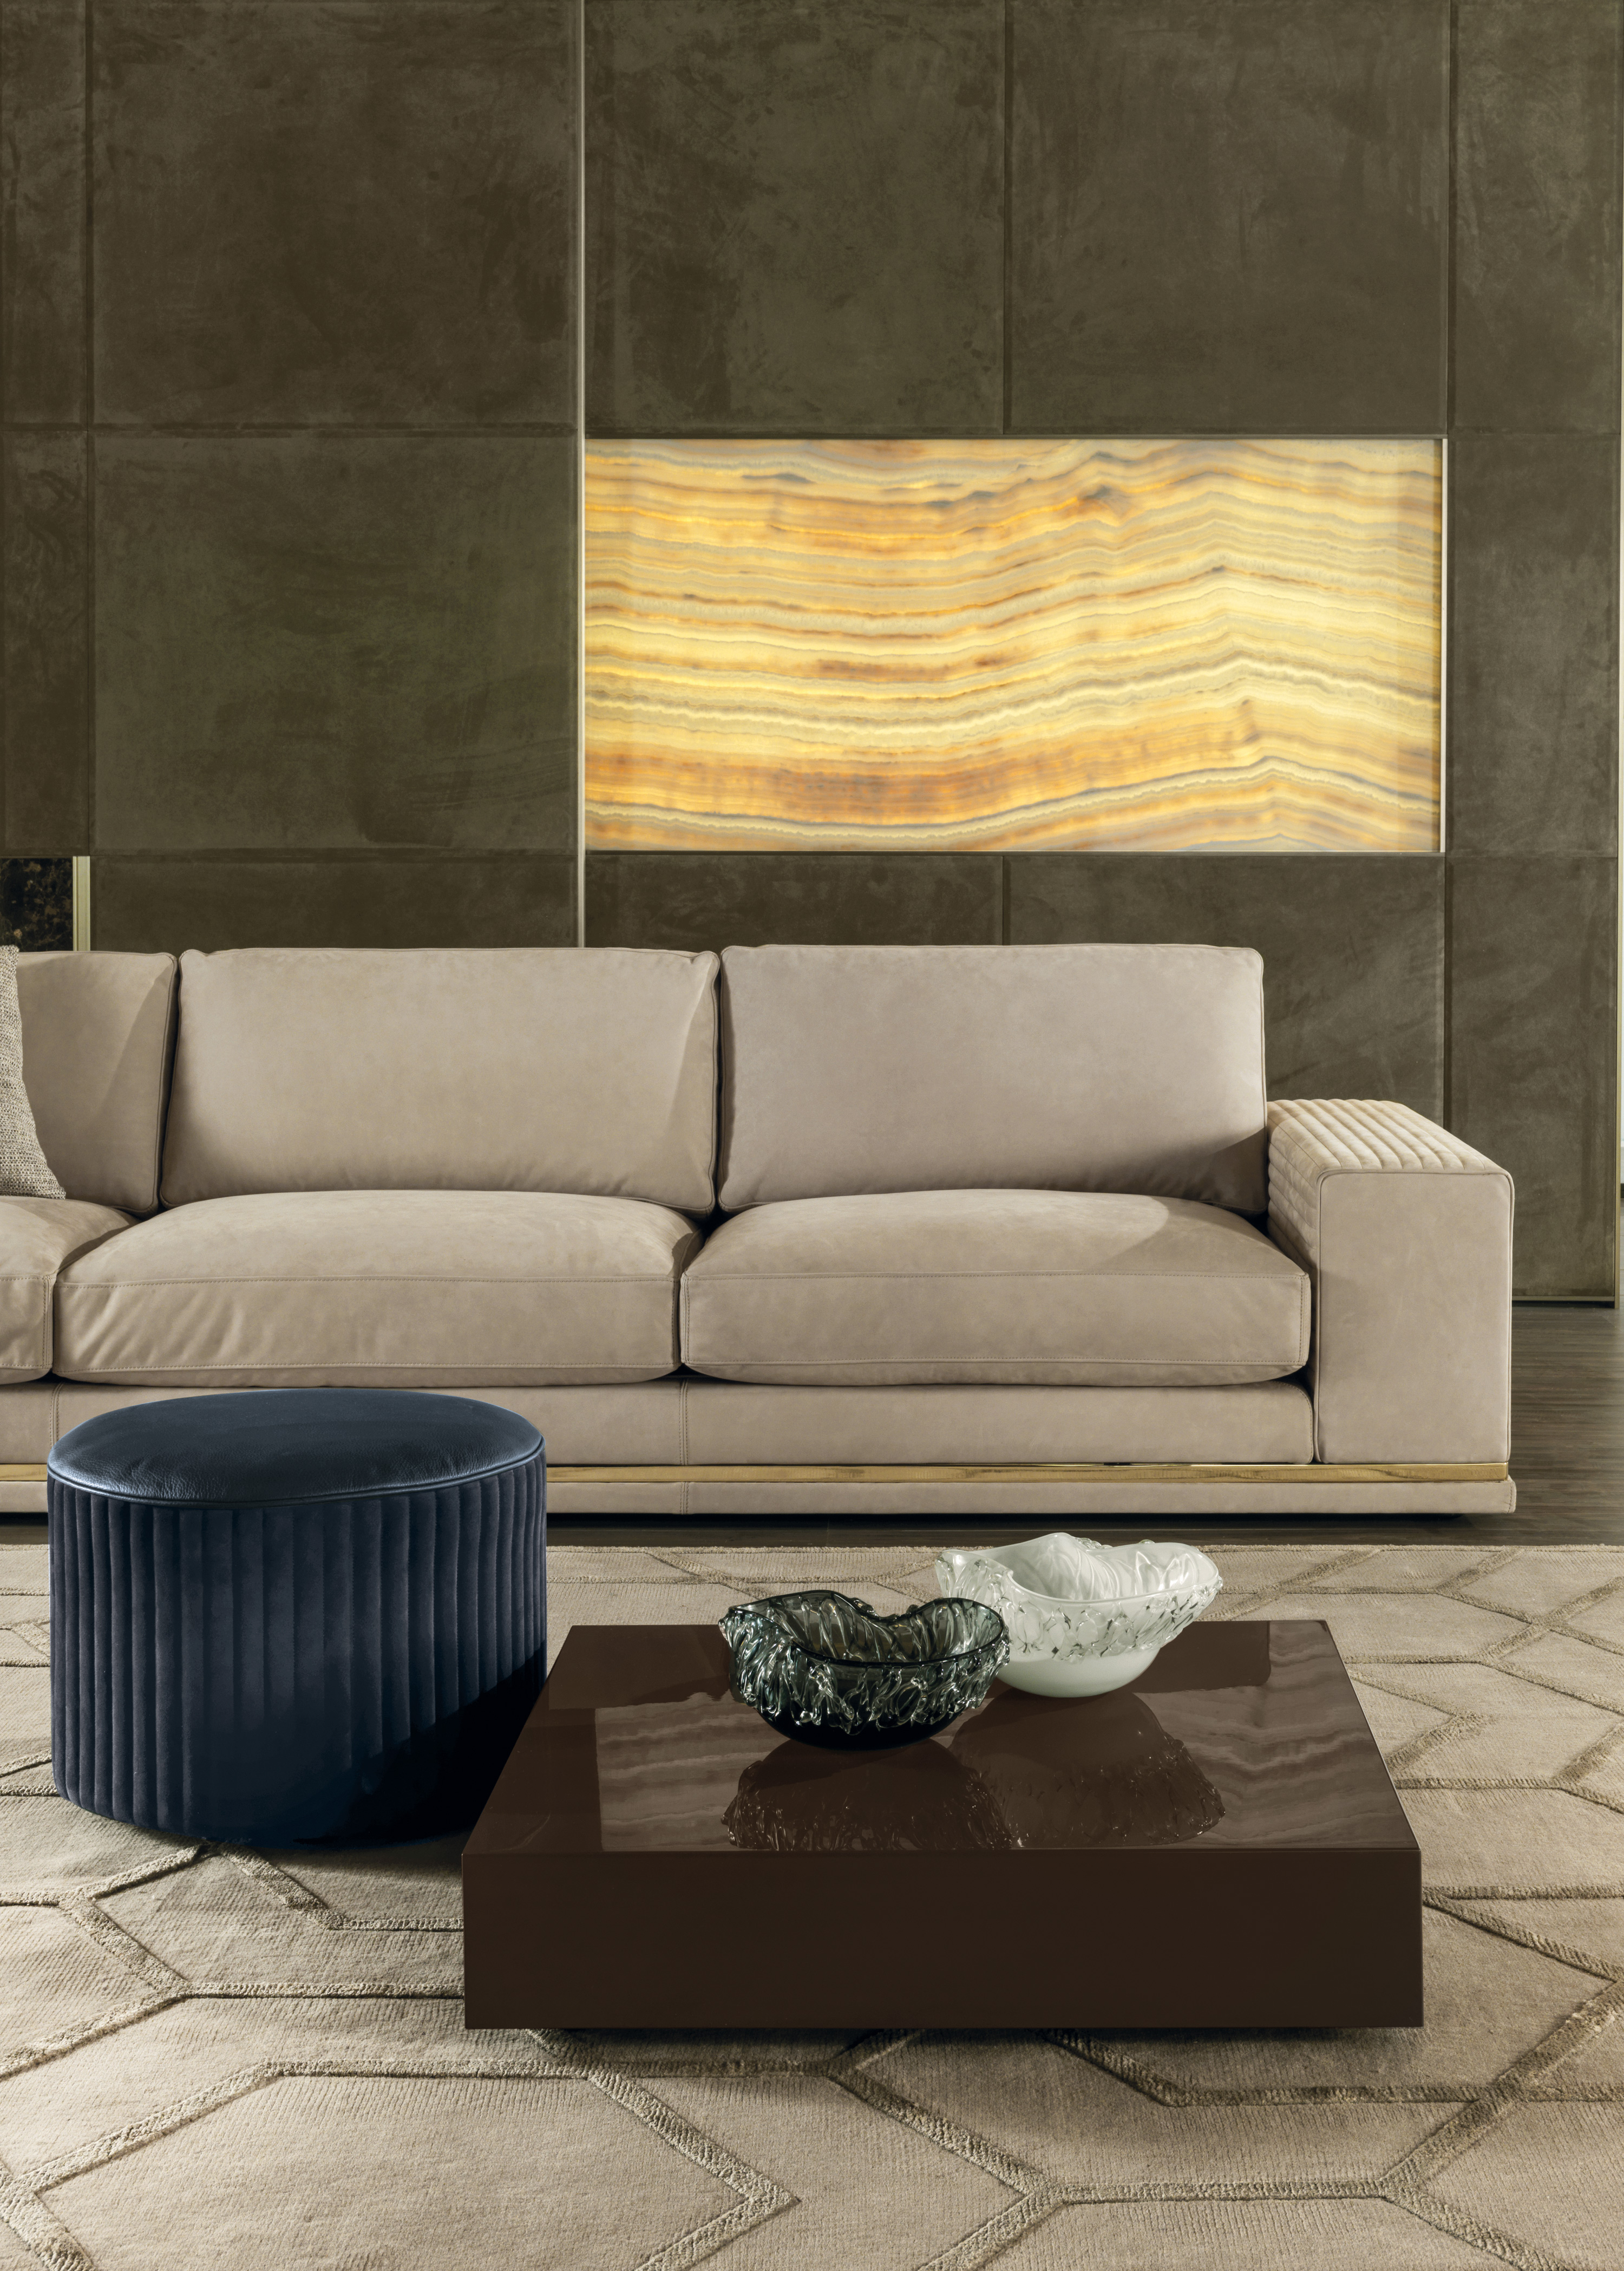 Cohen Down 2 Piece Sectionals Regarding Latest Cohen High End Italian Sofa – Italian Designer & Luxury Furniture At (View 5 of 20)